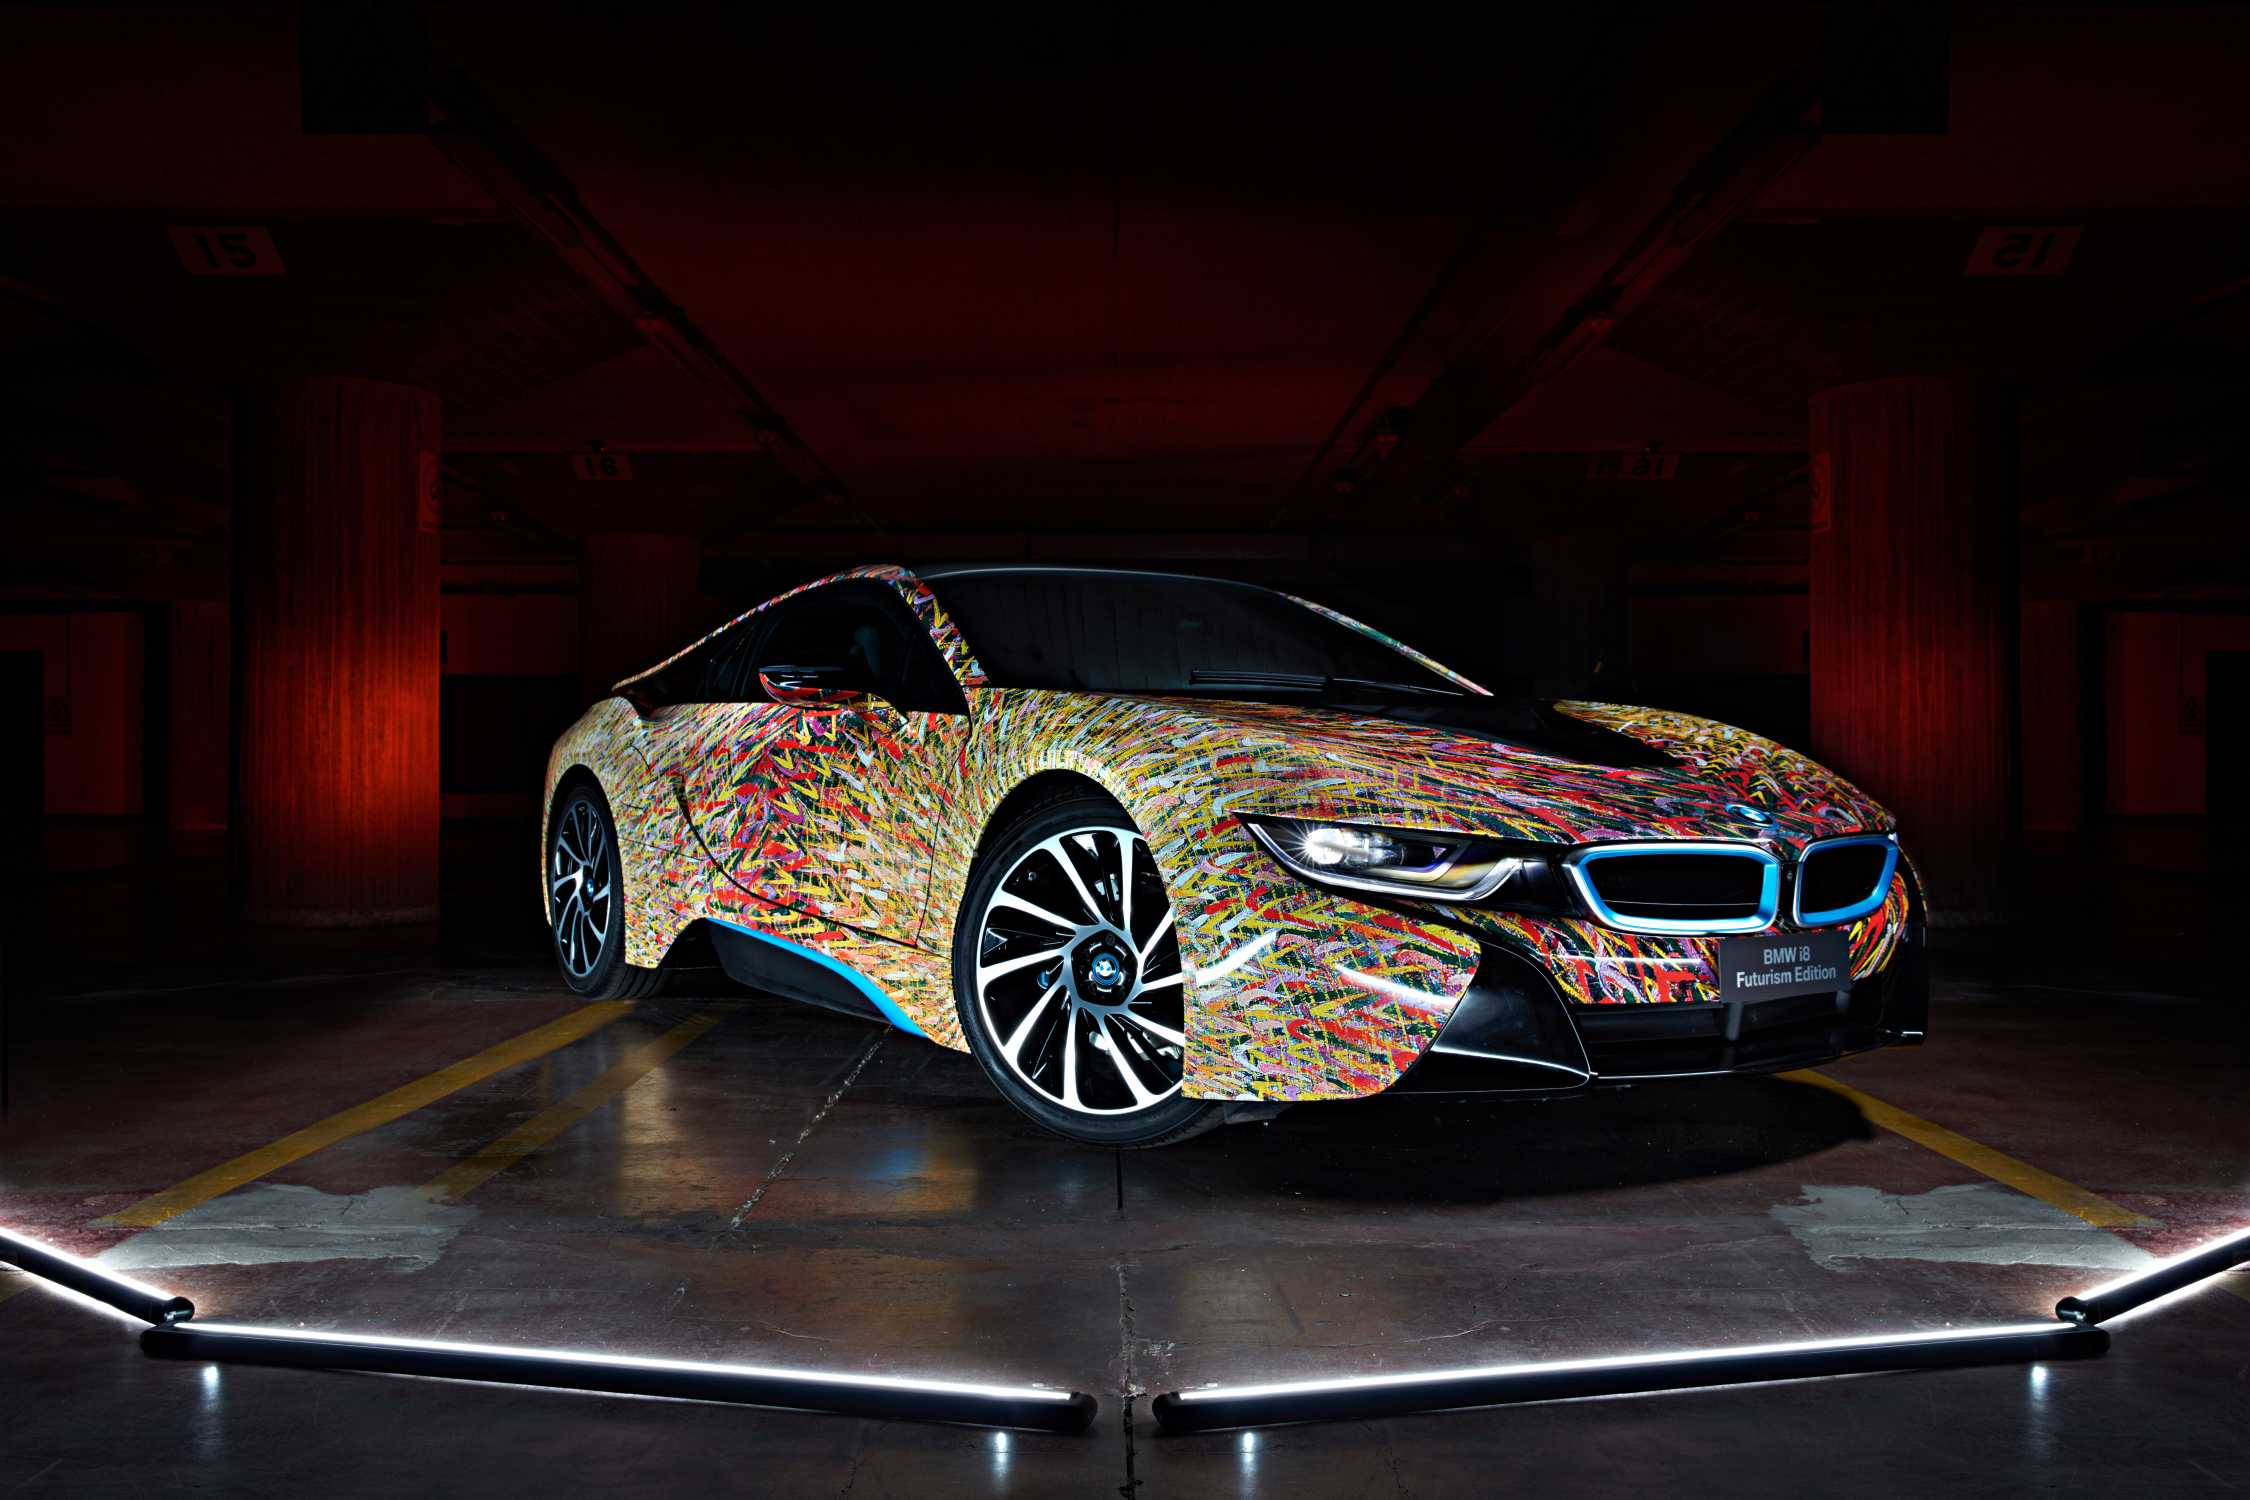 P90219442 Milan 16 May 2016 Bmw Italia And Garage Customs Presented The New I8 Futurism Edition 05 2250px